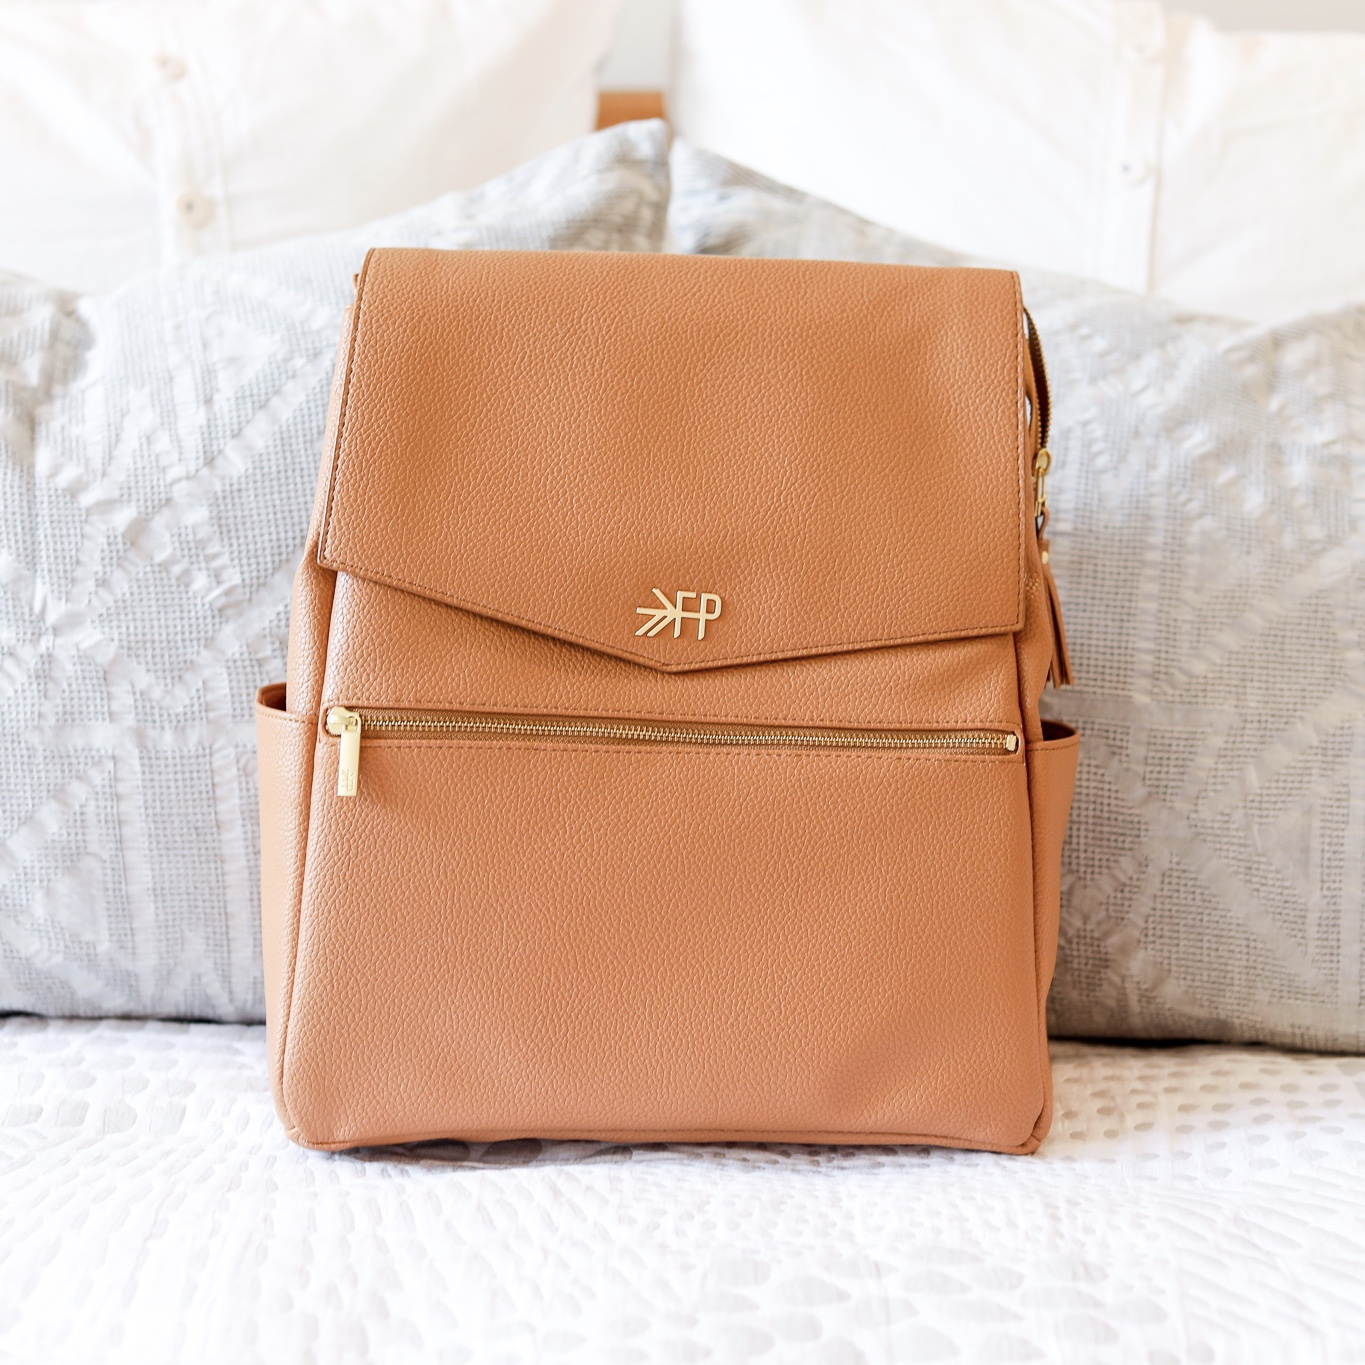 Best Baby Items by popular Atlanta motherhood blog, Moderately High Maintenance: image of a Freshly Picked diaper bag backpack.